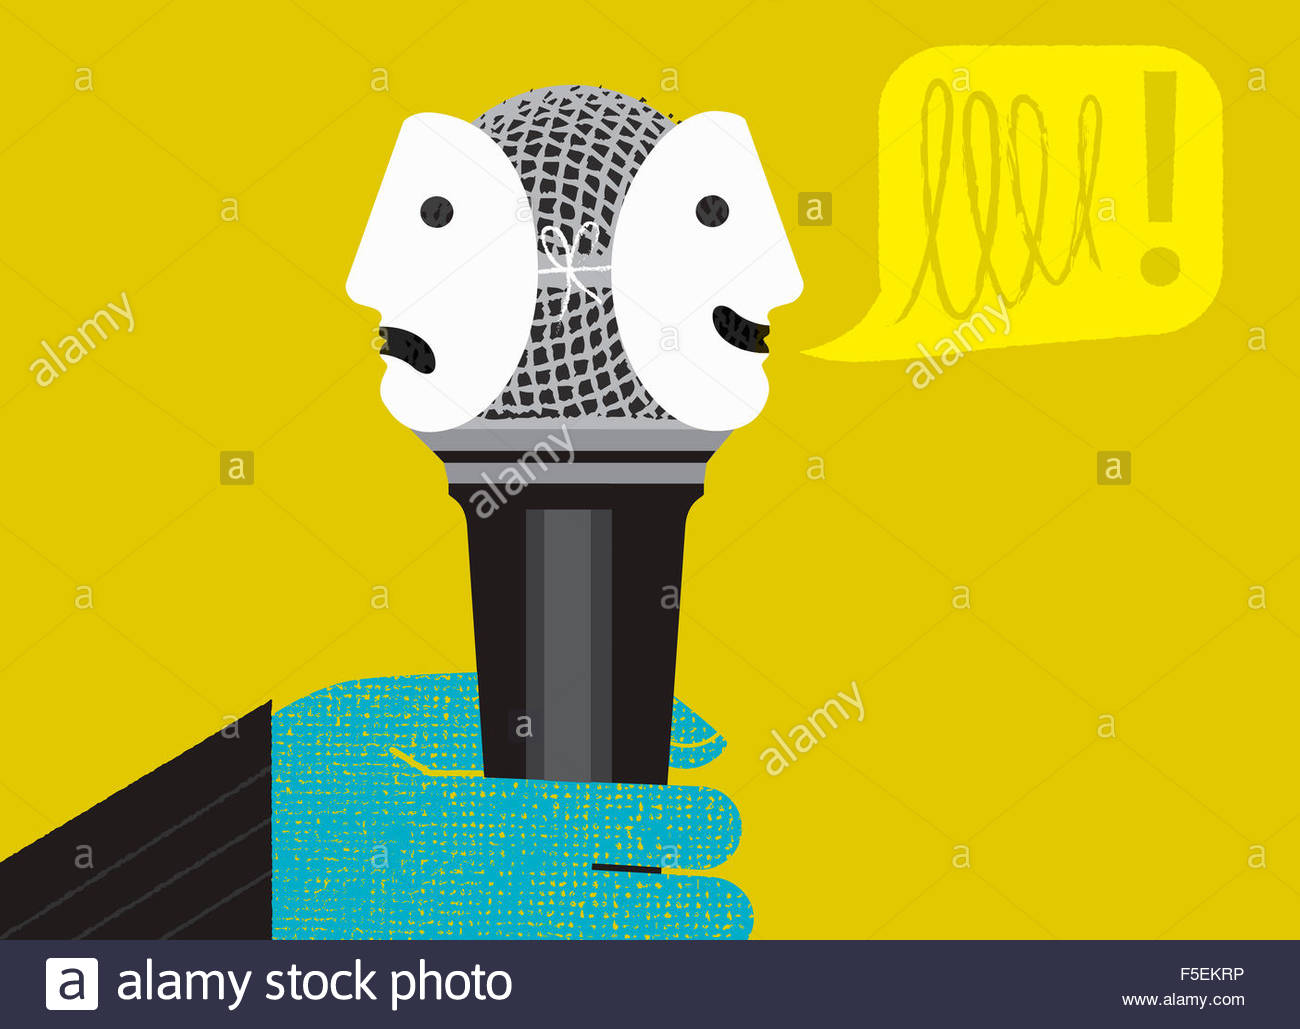 Hand holding microphone with happy and sad face masks Stock Photo